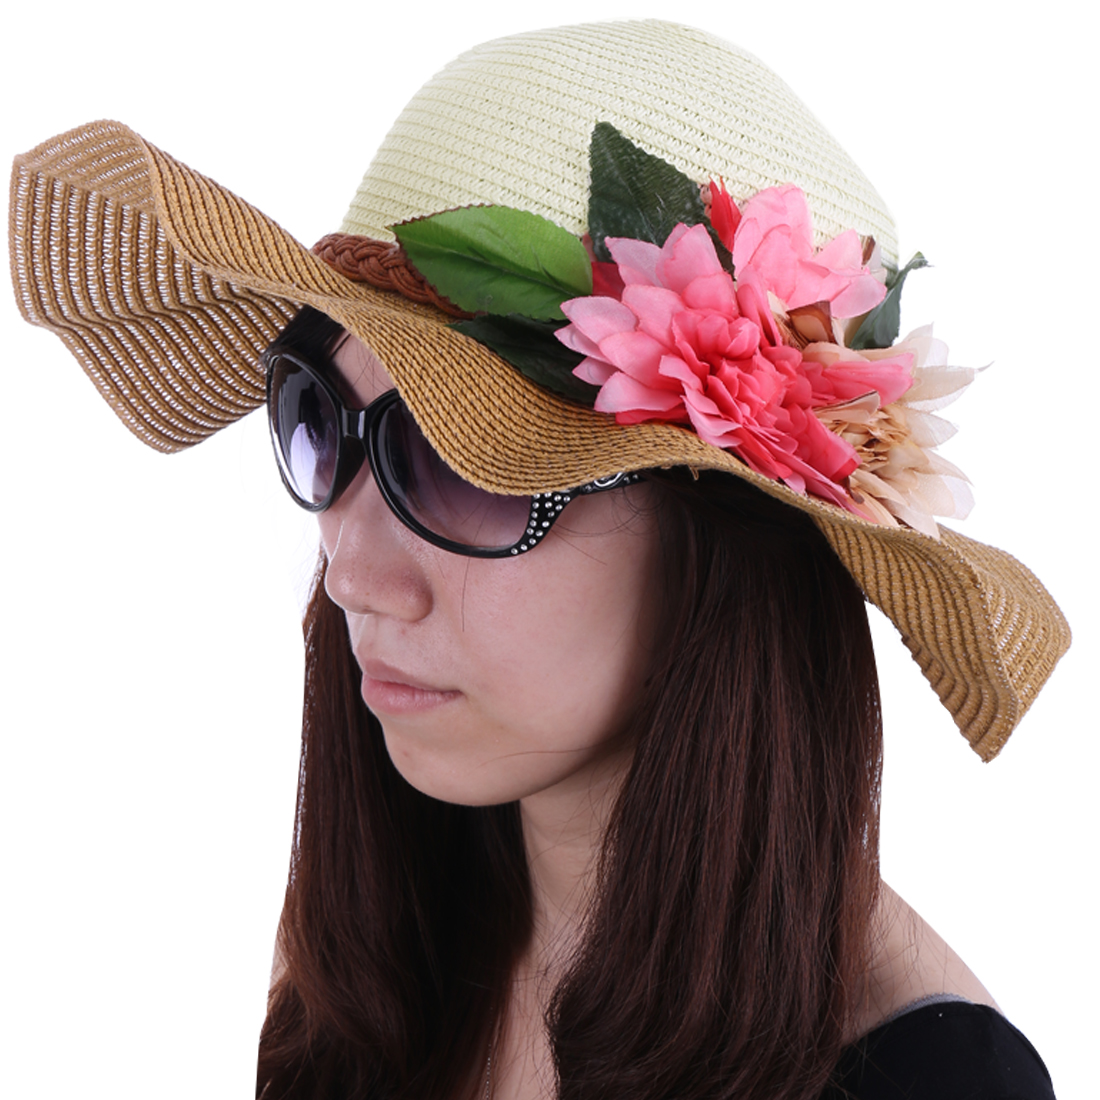 Women Wavy Brim Color Block Sun Hat Light Brown White